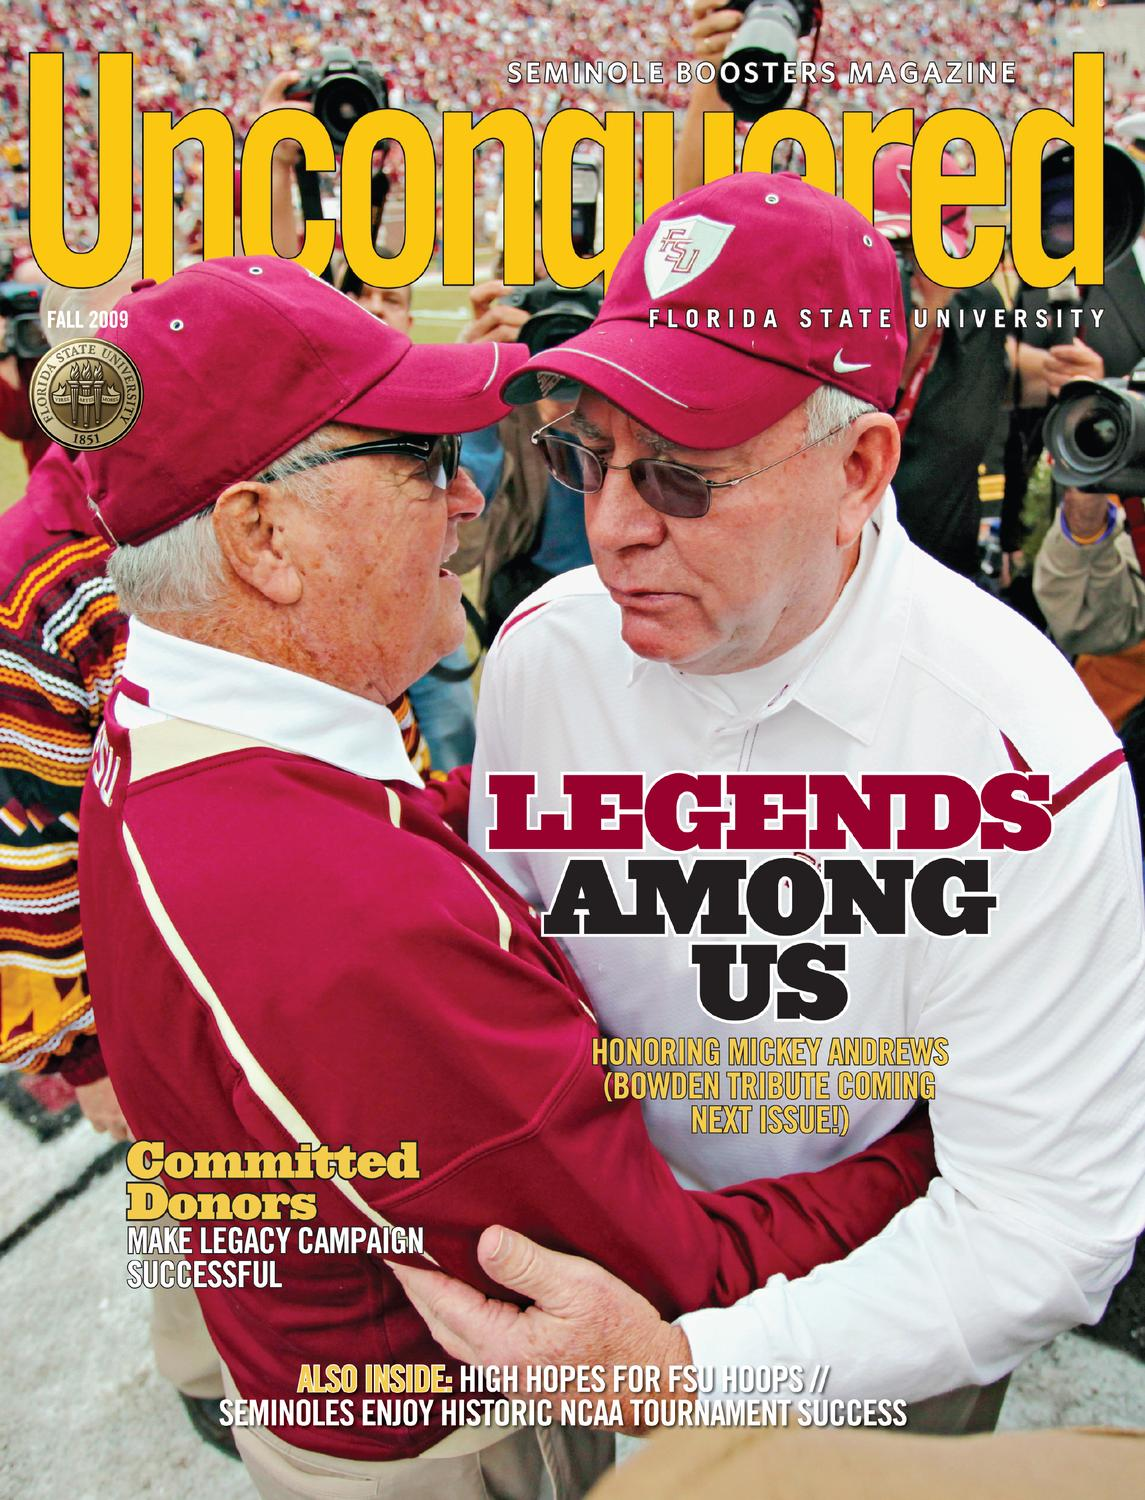 new concept 64548 8fffc Unconquered Magazine Dec2009 by Seminole Boosters Inc - issuu